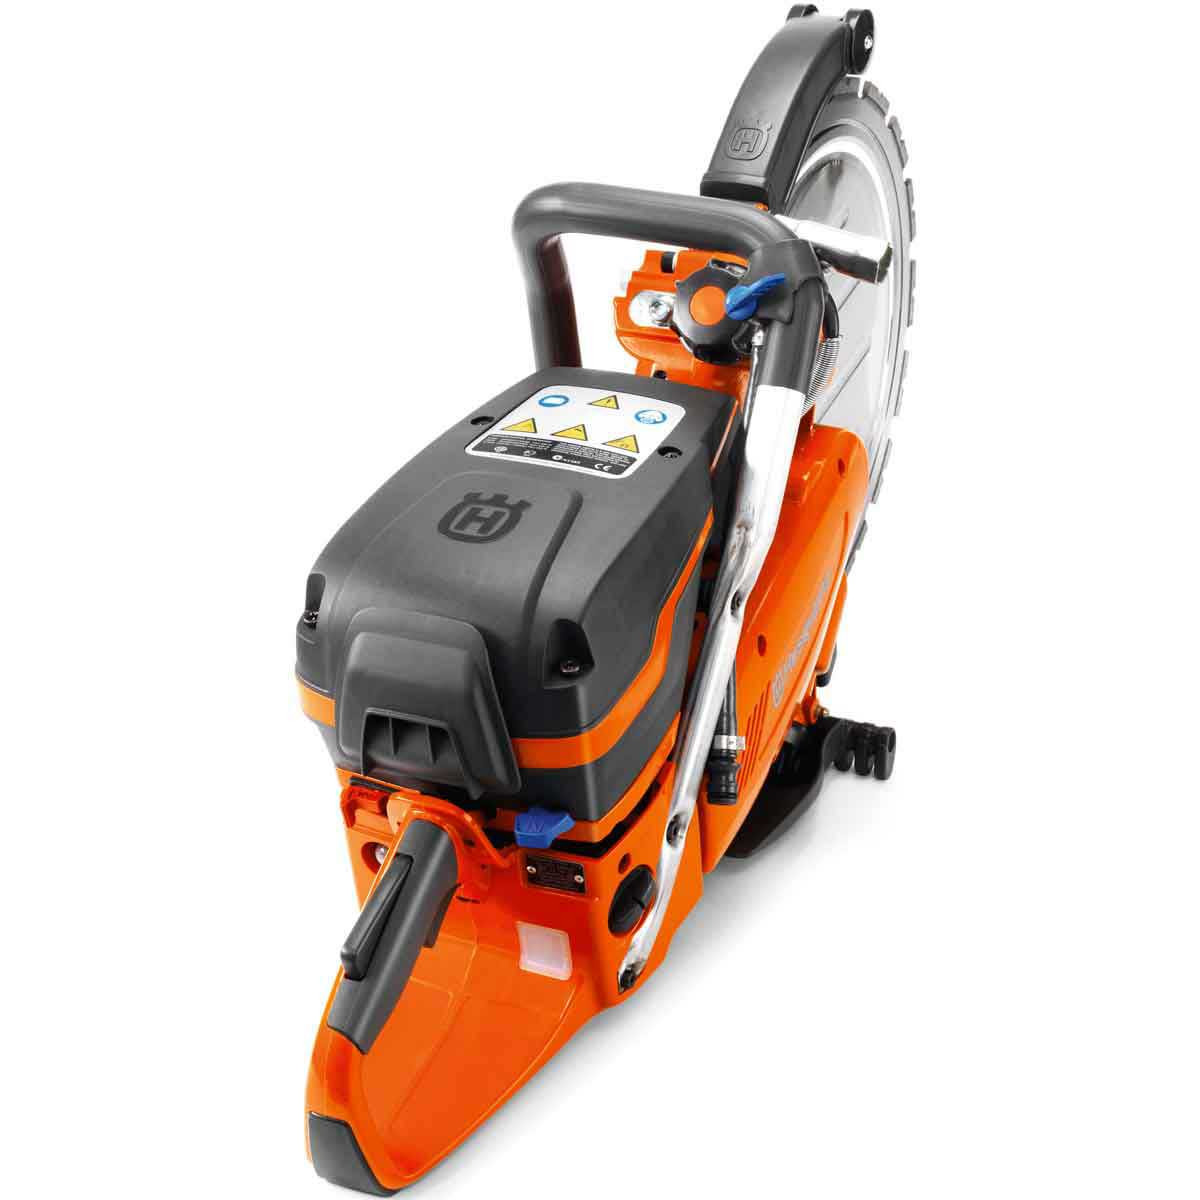 Husqvarna K970 Ring Saw gas